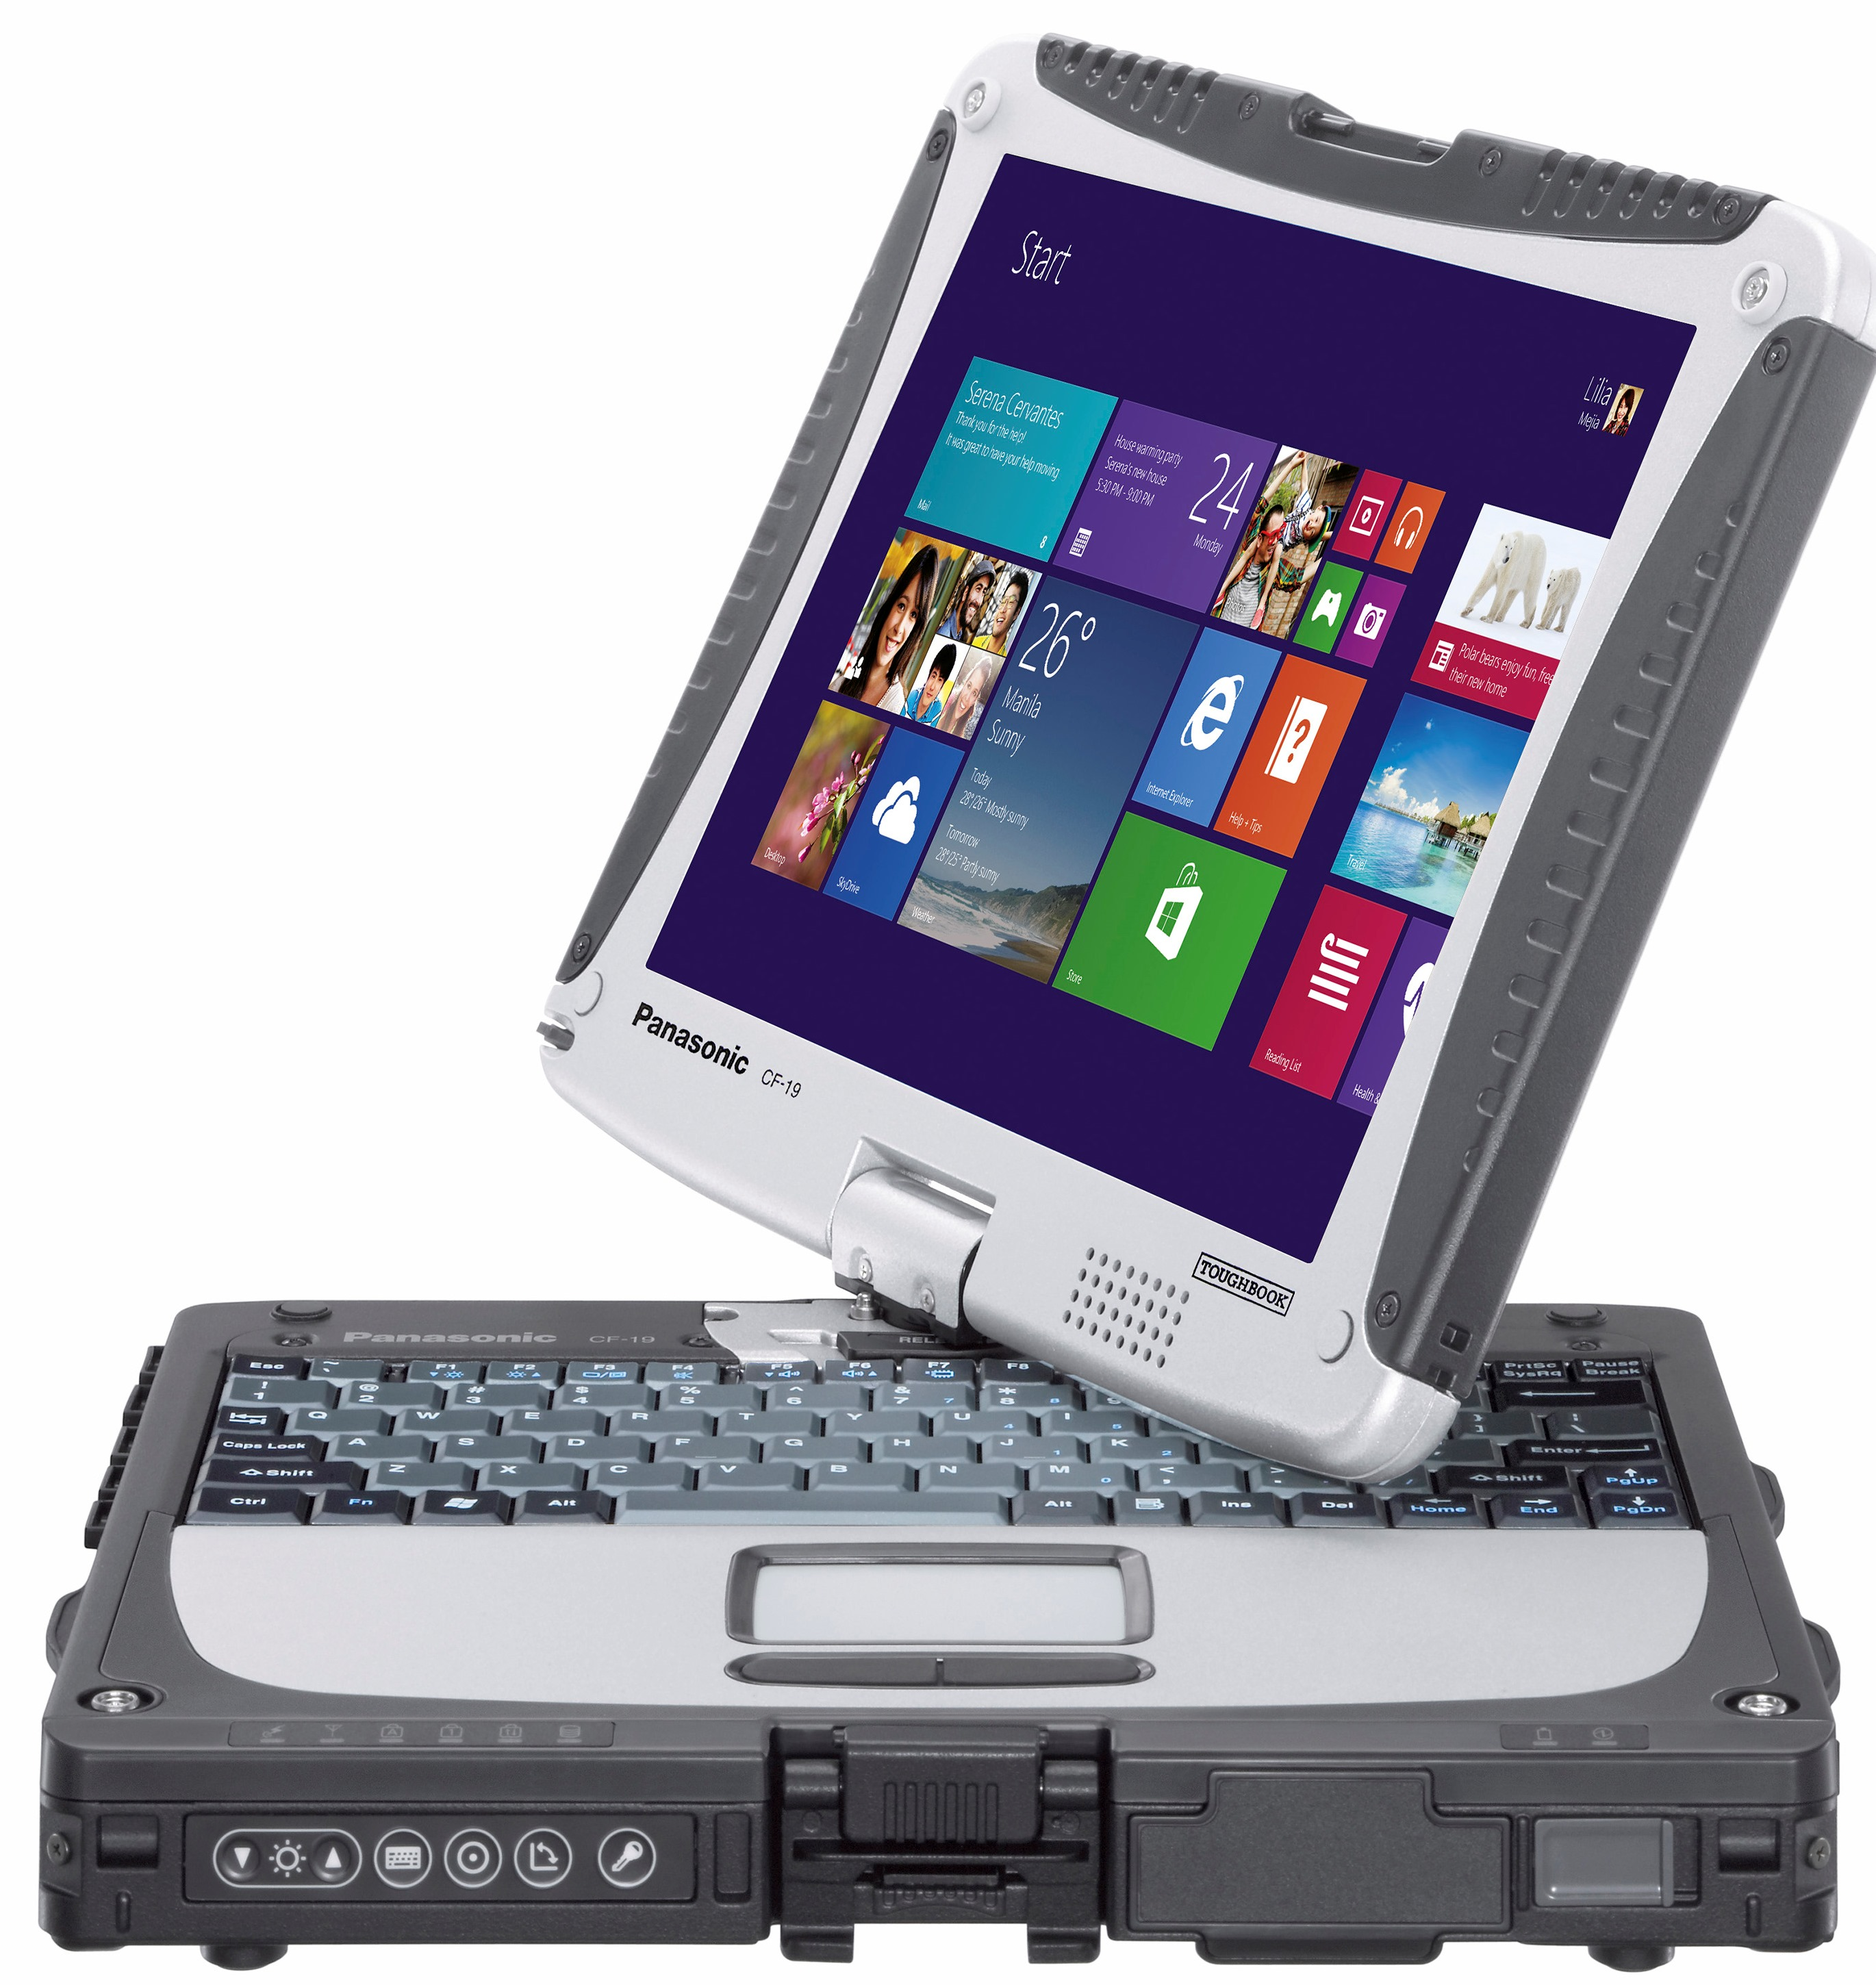 Toughbook 19 - Discontinued